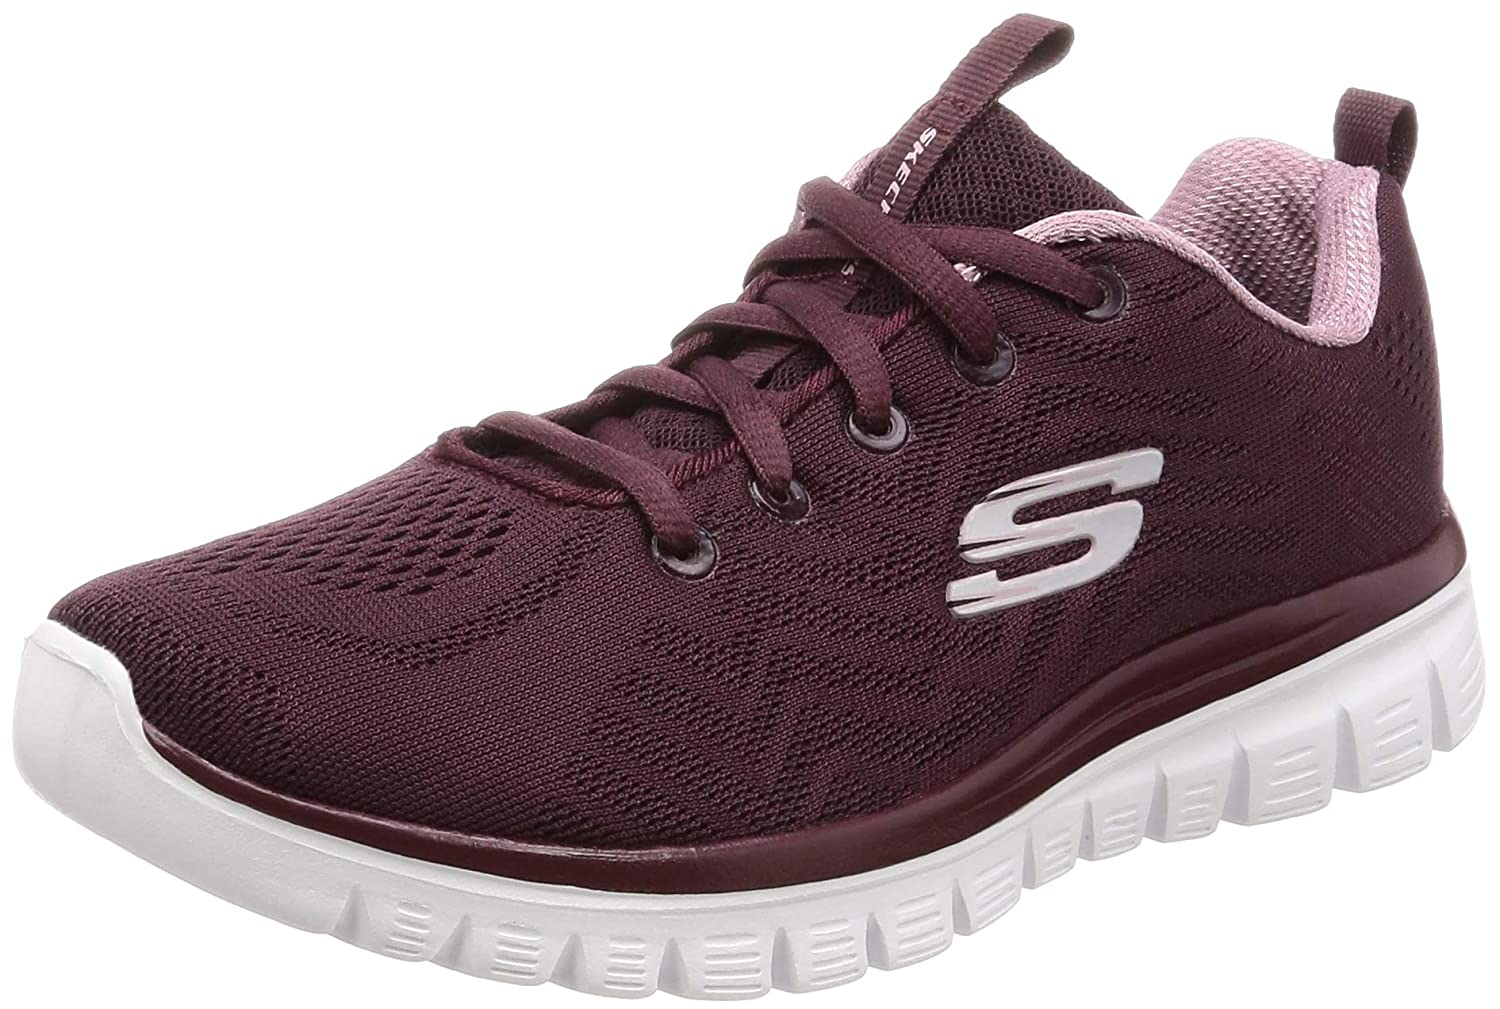 TALLA 39 EU. Skechers Graceful-Get Connected, Zapatillas para Mujer